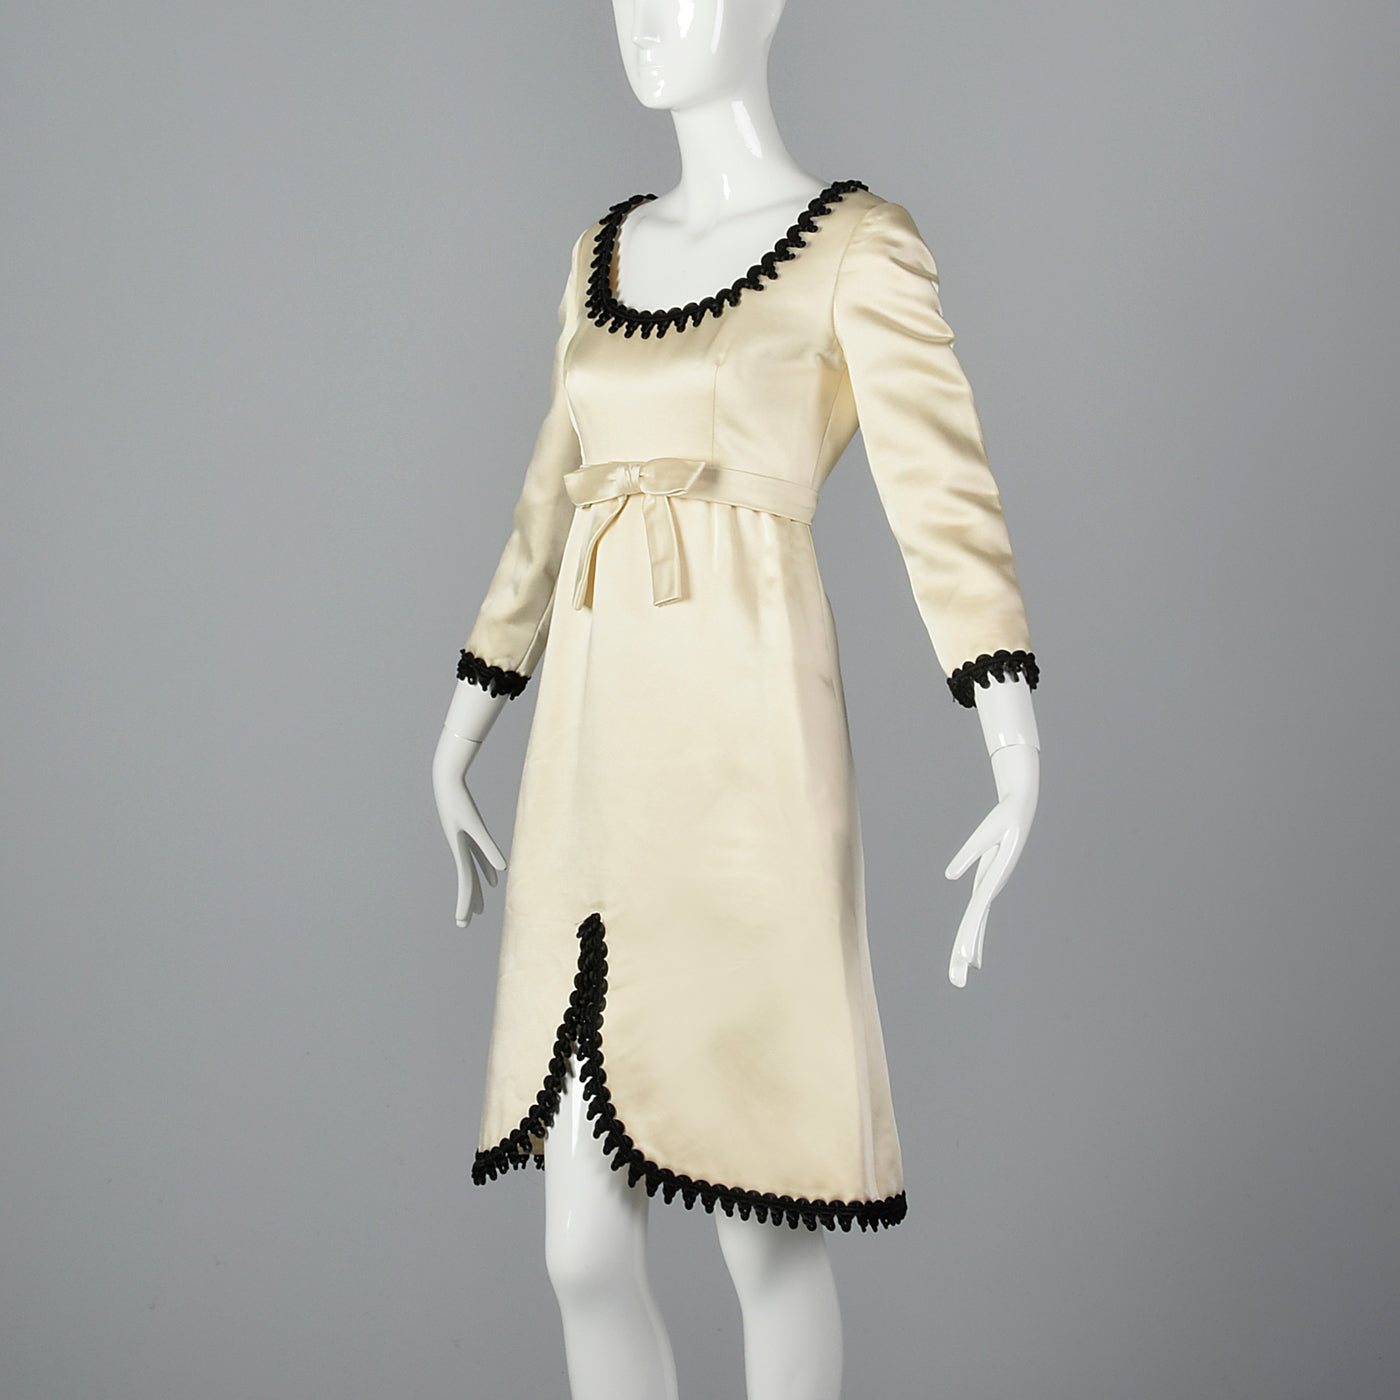 1960s Mollie Parnis White Satin Dress with Black Trim